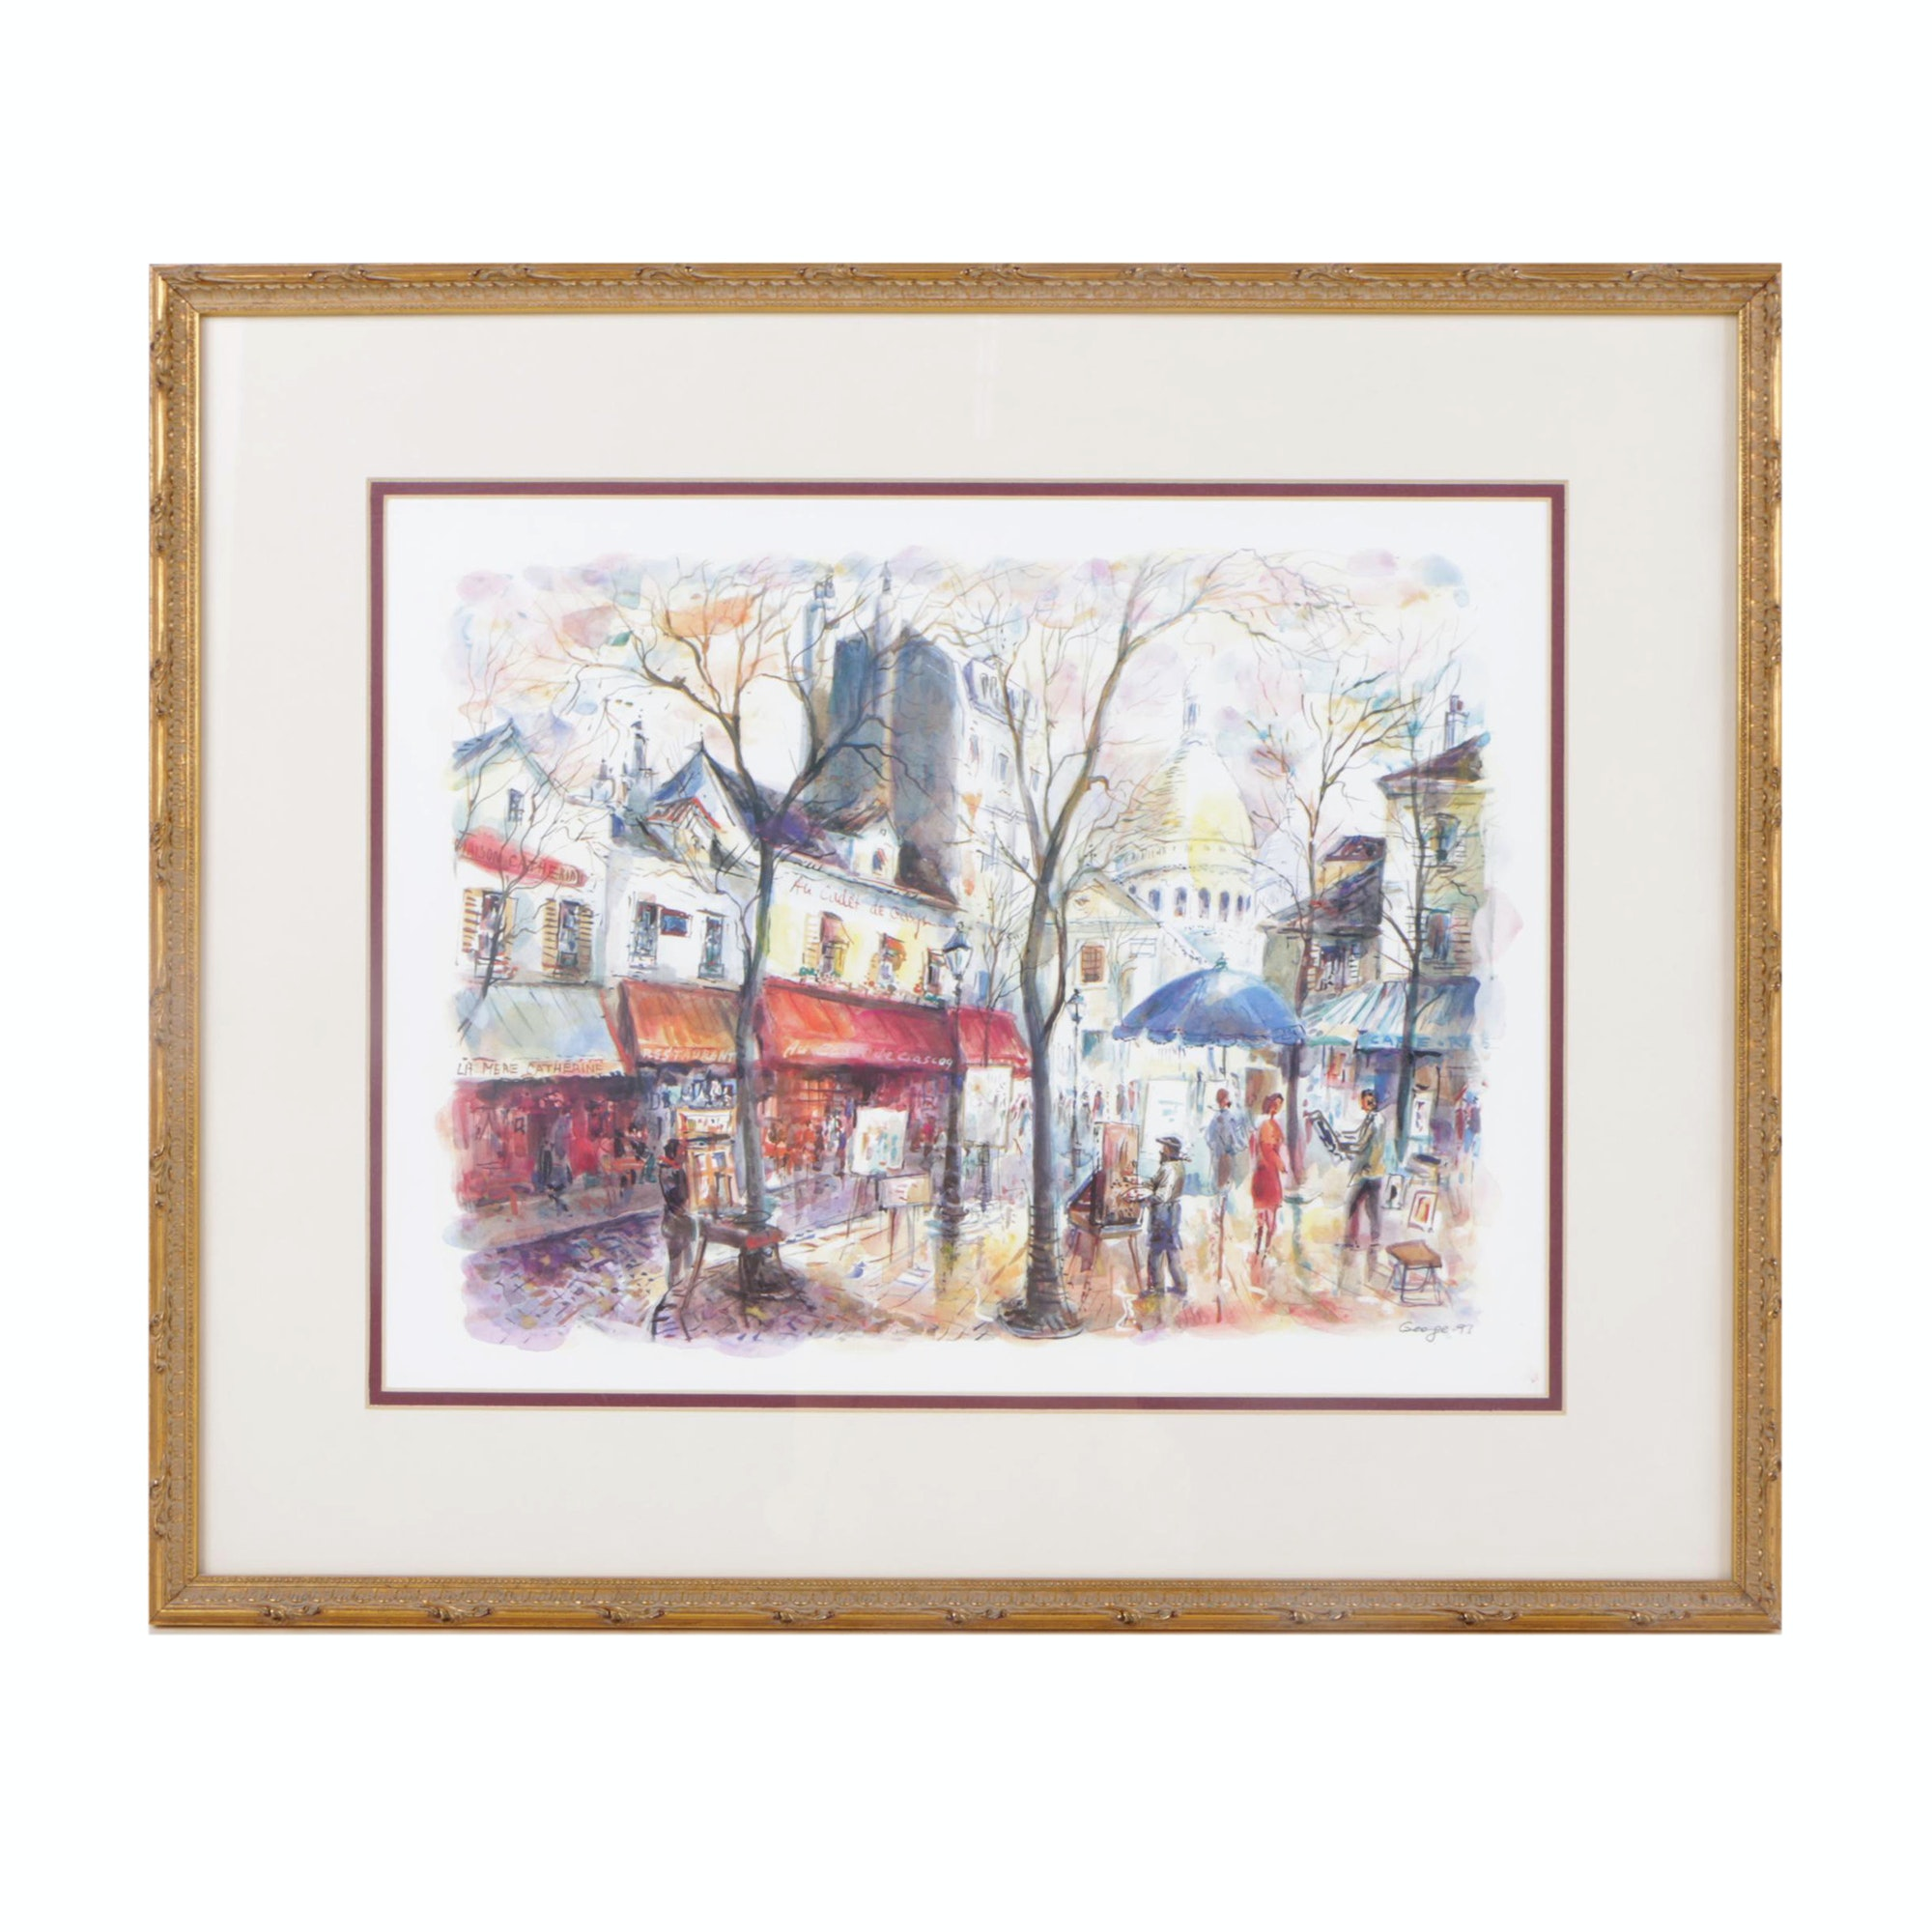 George Offset Lithograph of Street Scene